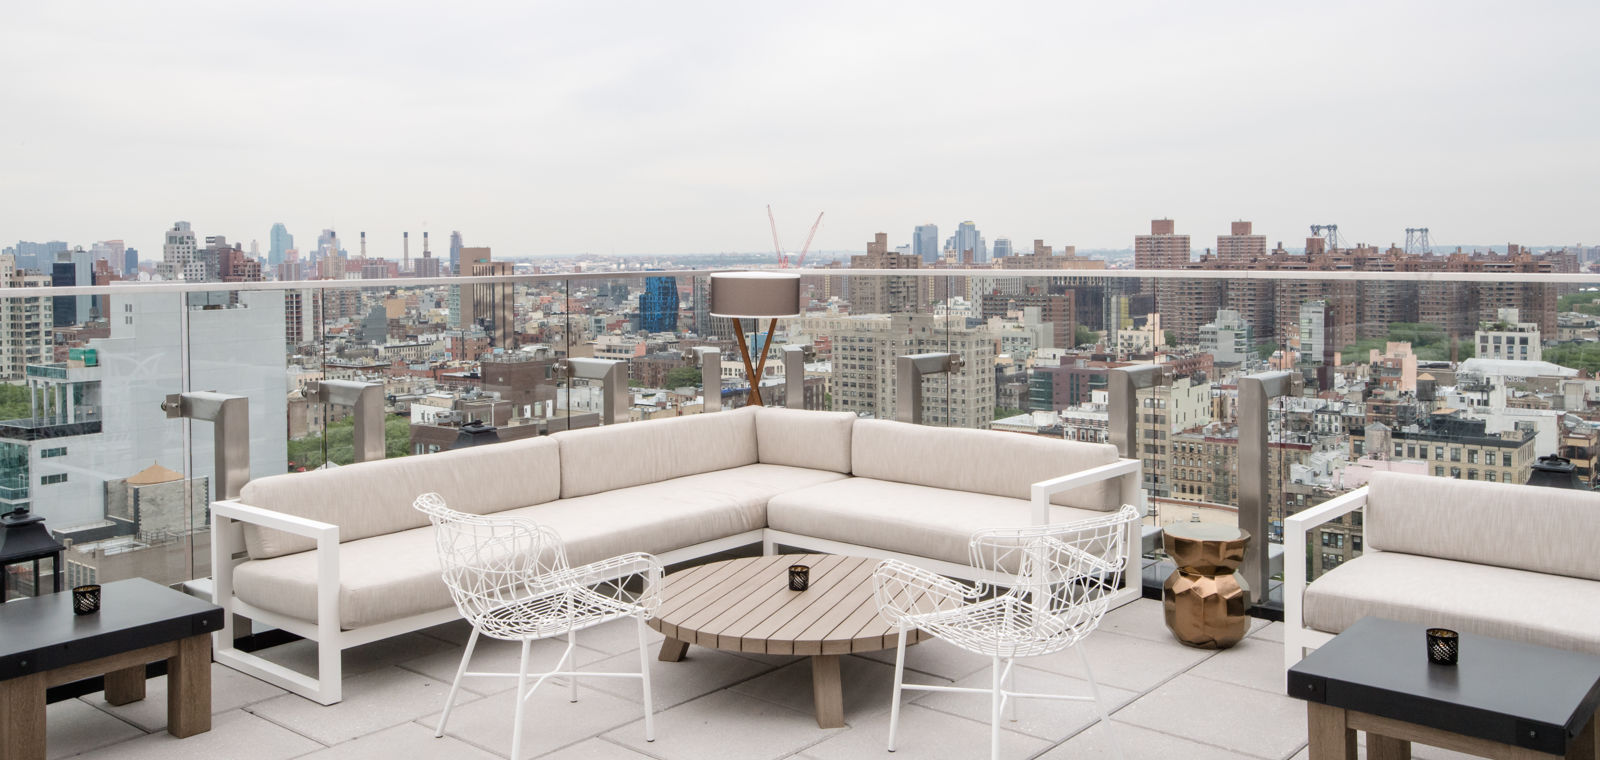 50bowery_Thecrown_rooftop